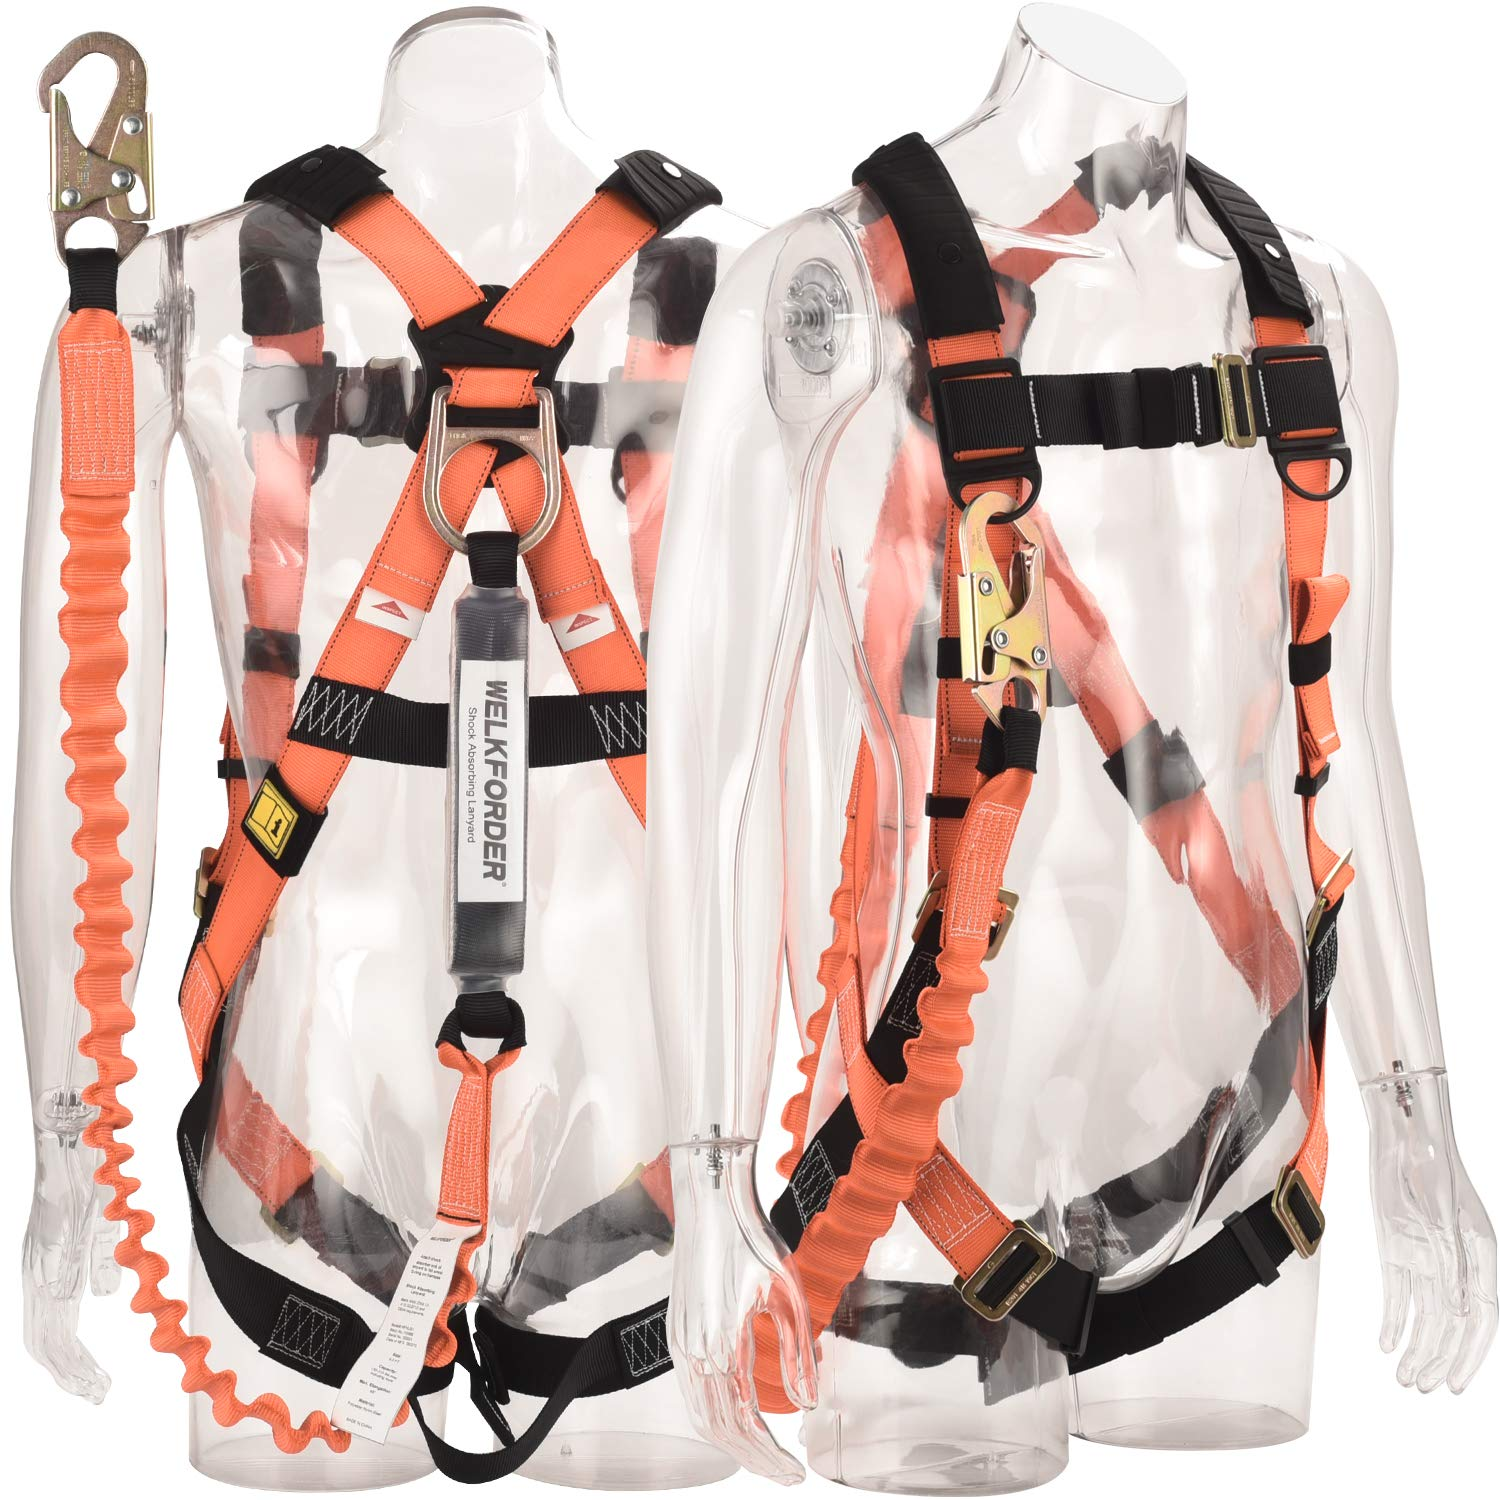 WELKFORDER 1D-Ring Industrial Fall Protection Safety Harness with 6-Foot Shock Absorber Stretchable Lanyard [Snap Hook End] | Permanent attached Kit | ANSI Complaint Personal Fall Arrest System(PFAS) by WELKFORDER